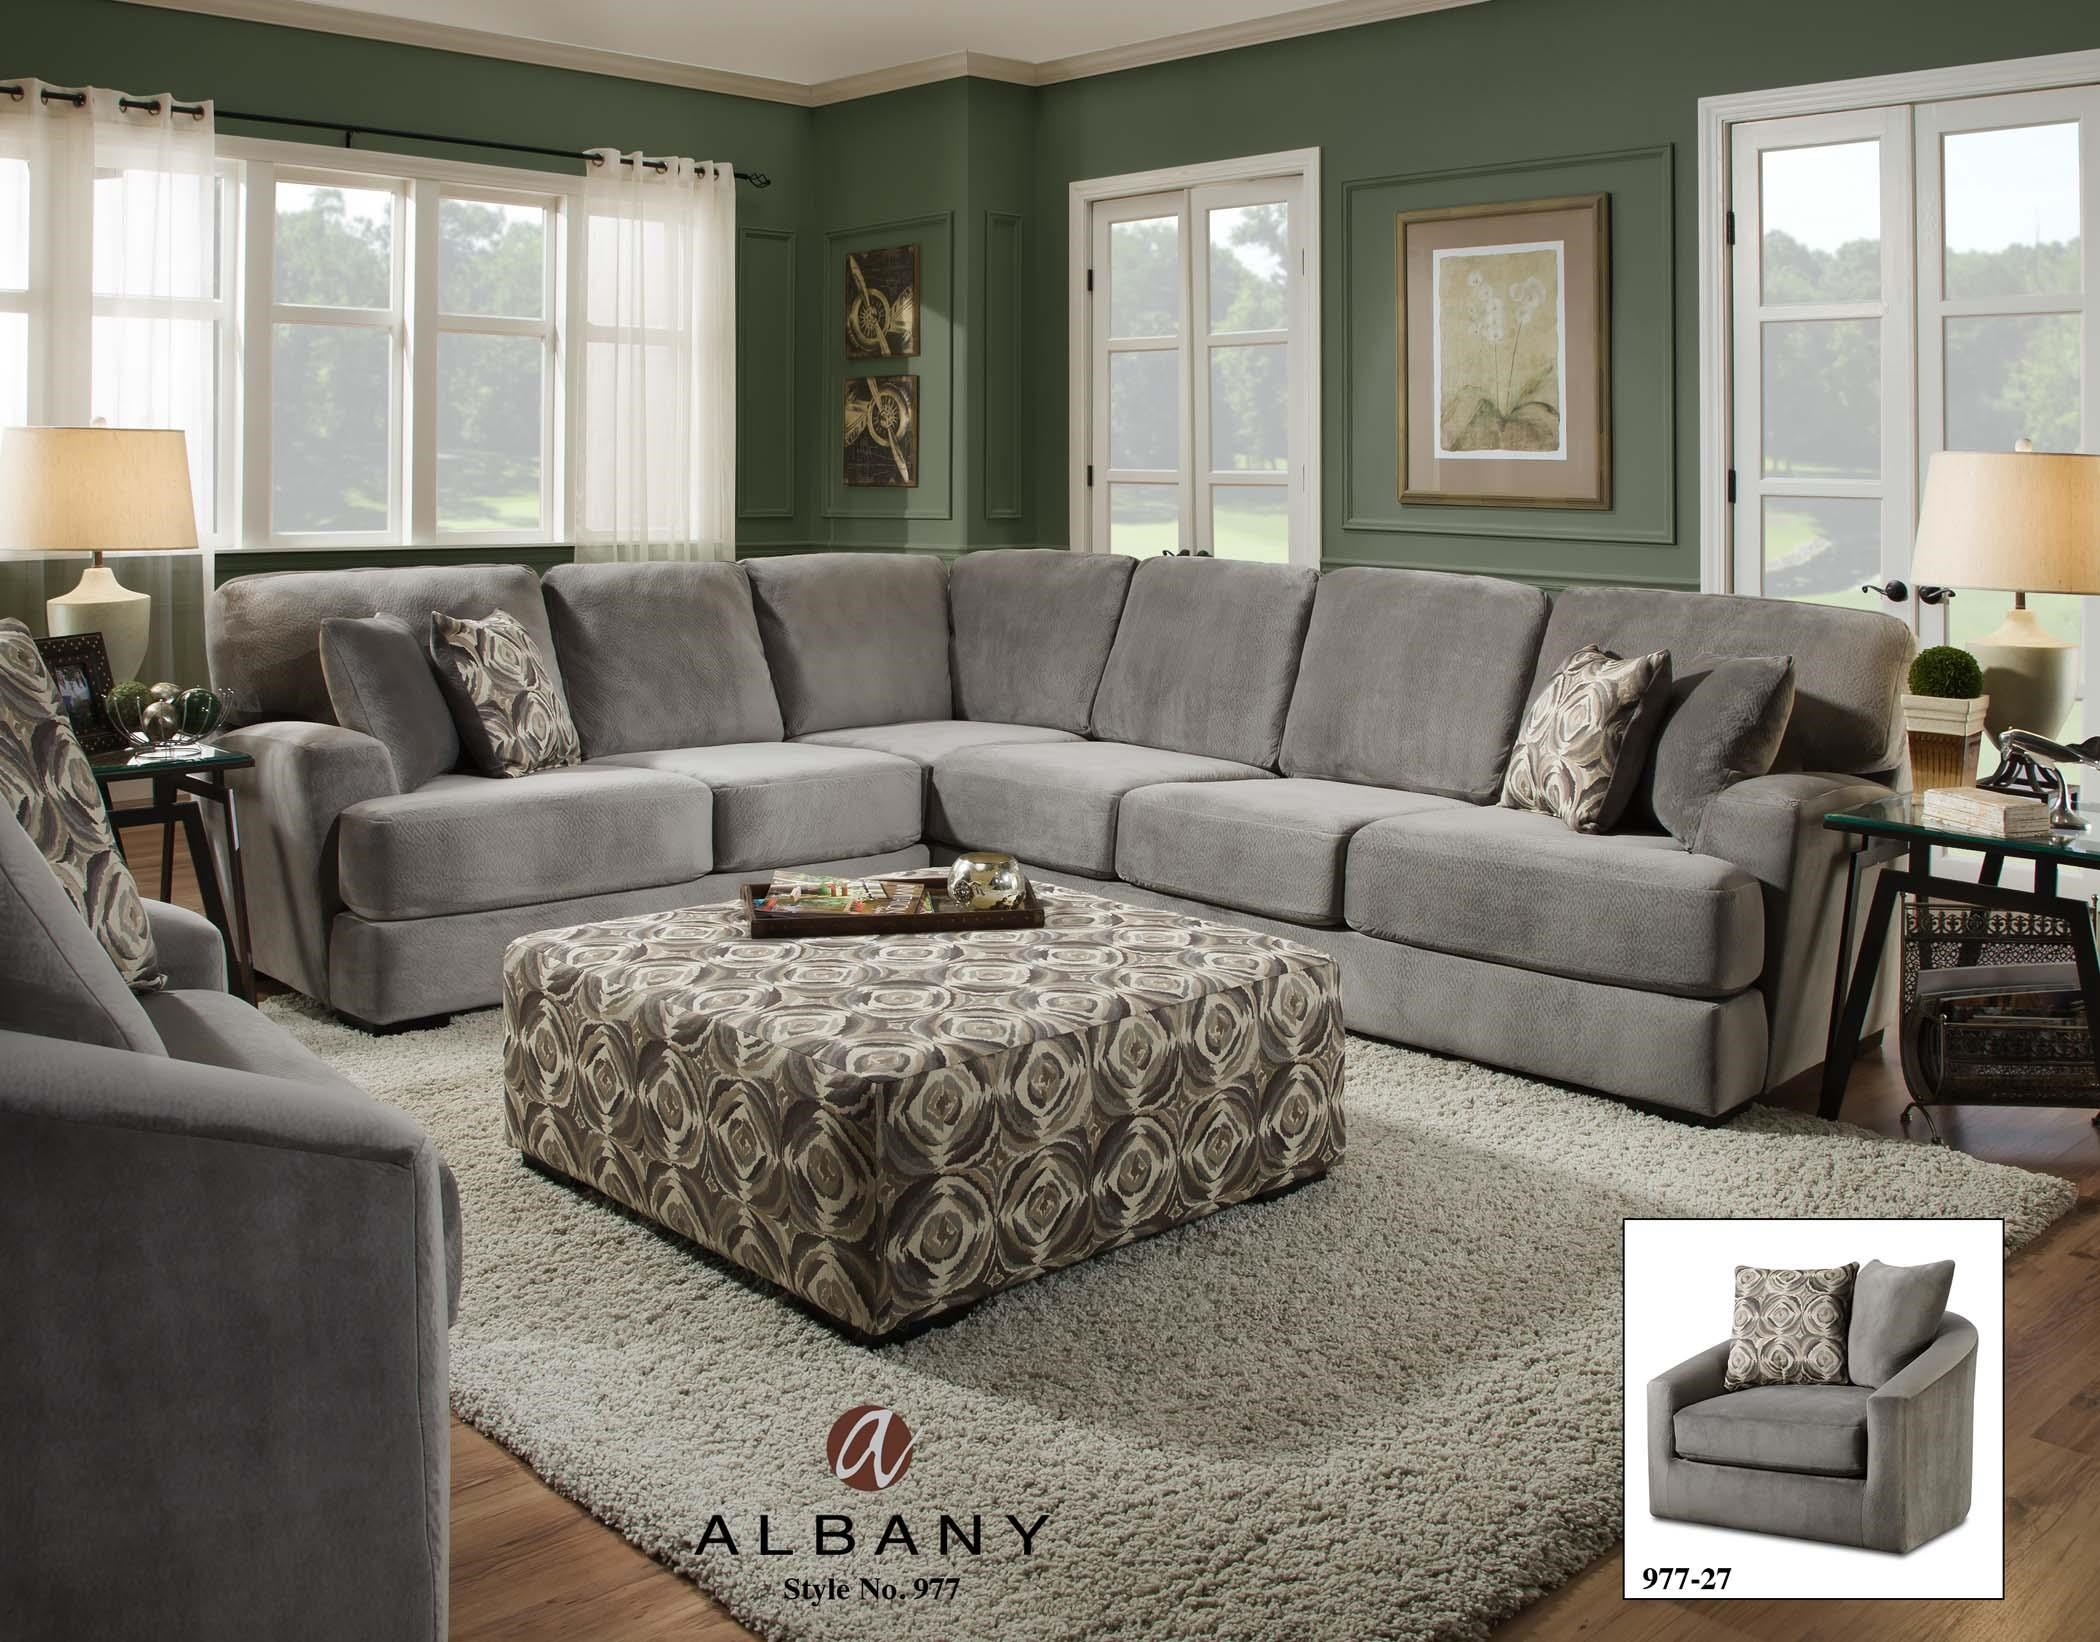 Living room furniture upholstery group albany 977 transitional living